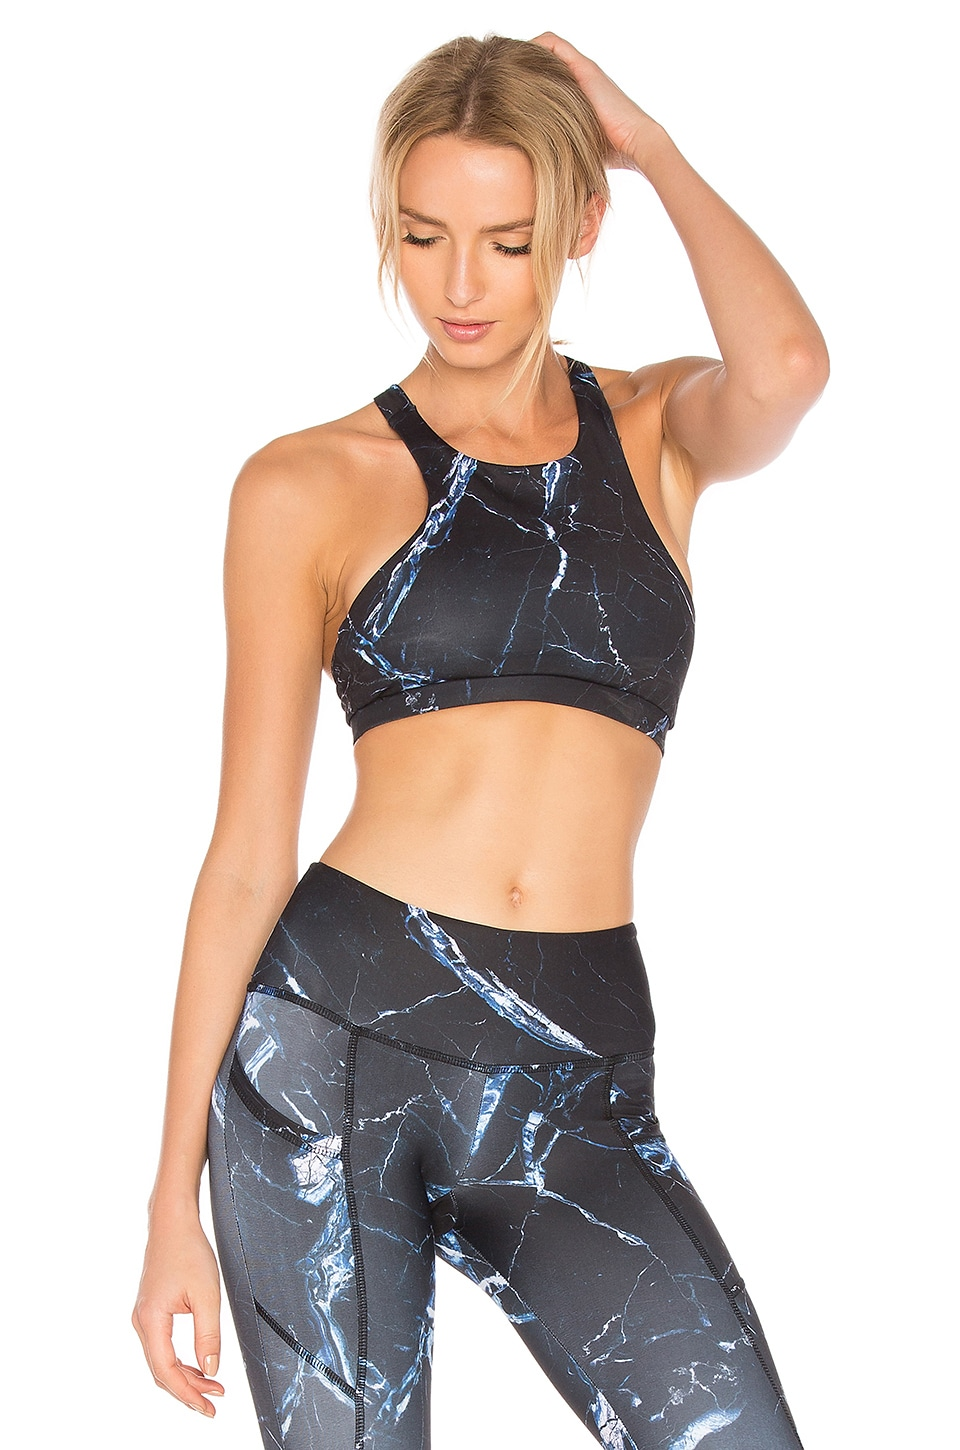 The Presley Sports Bra by Strut-This